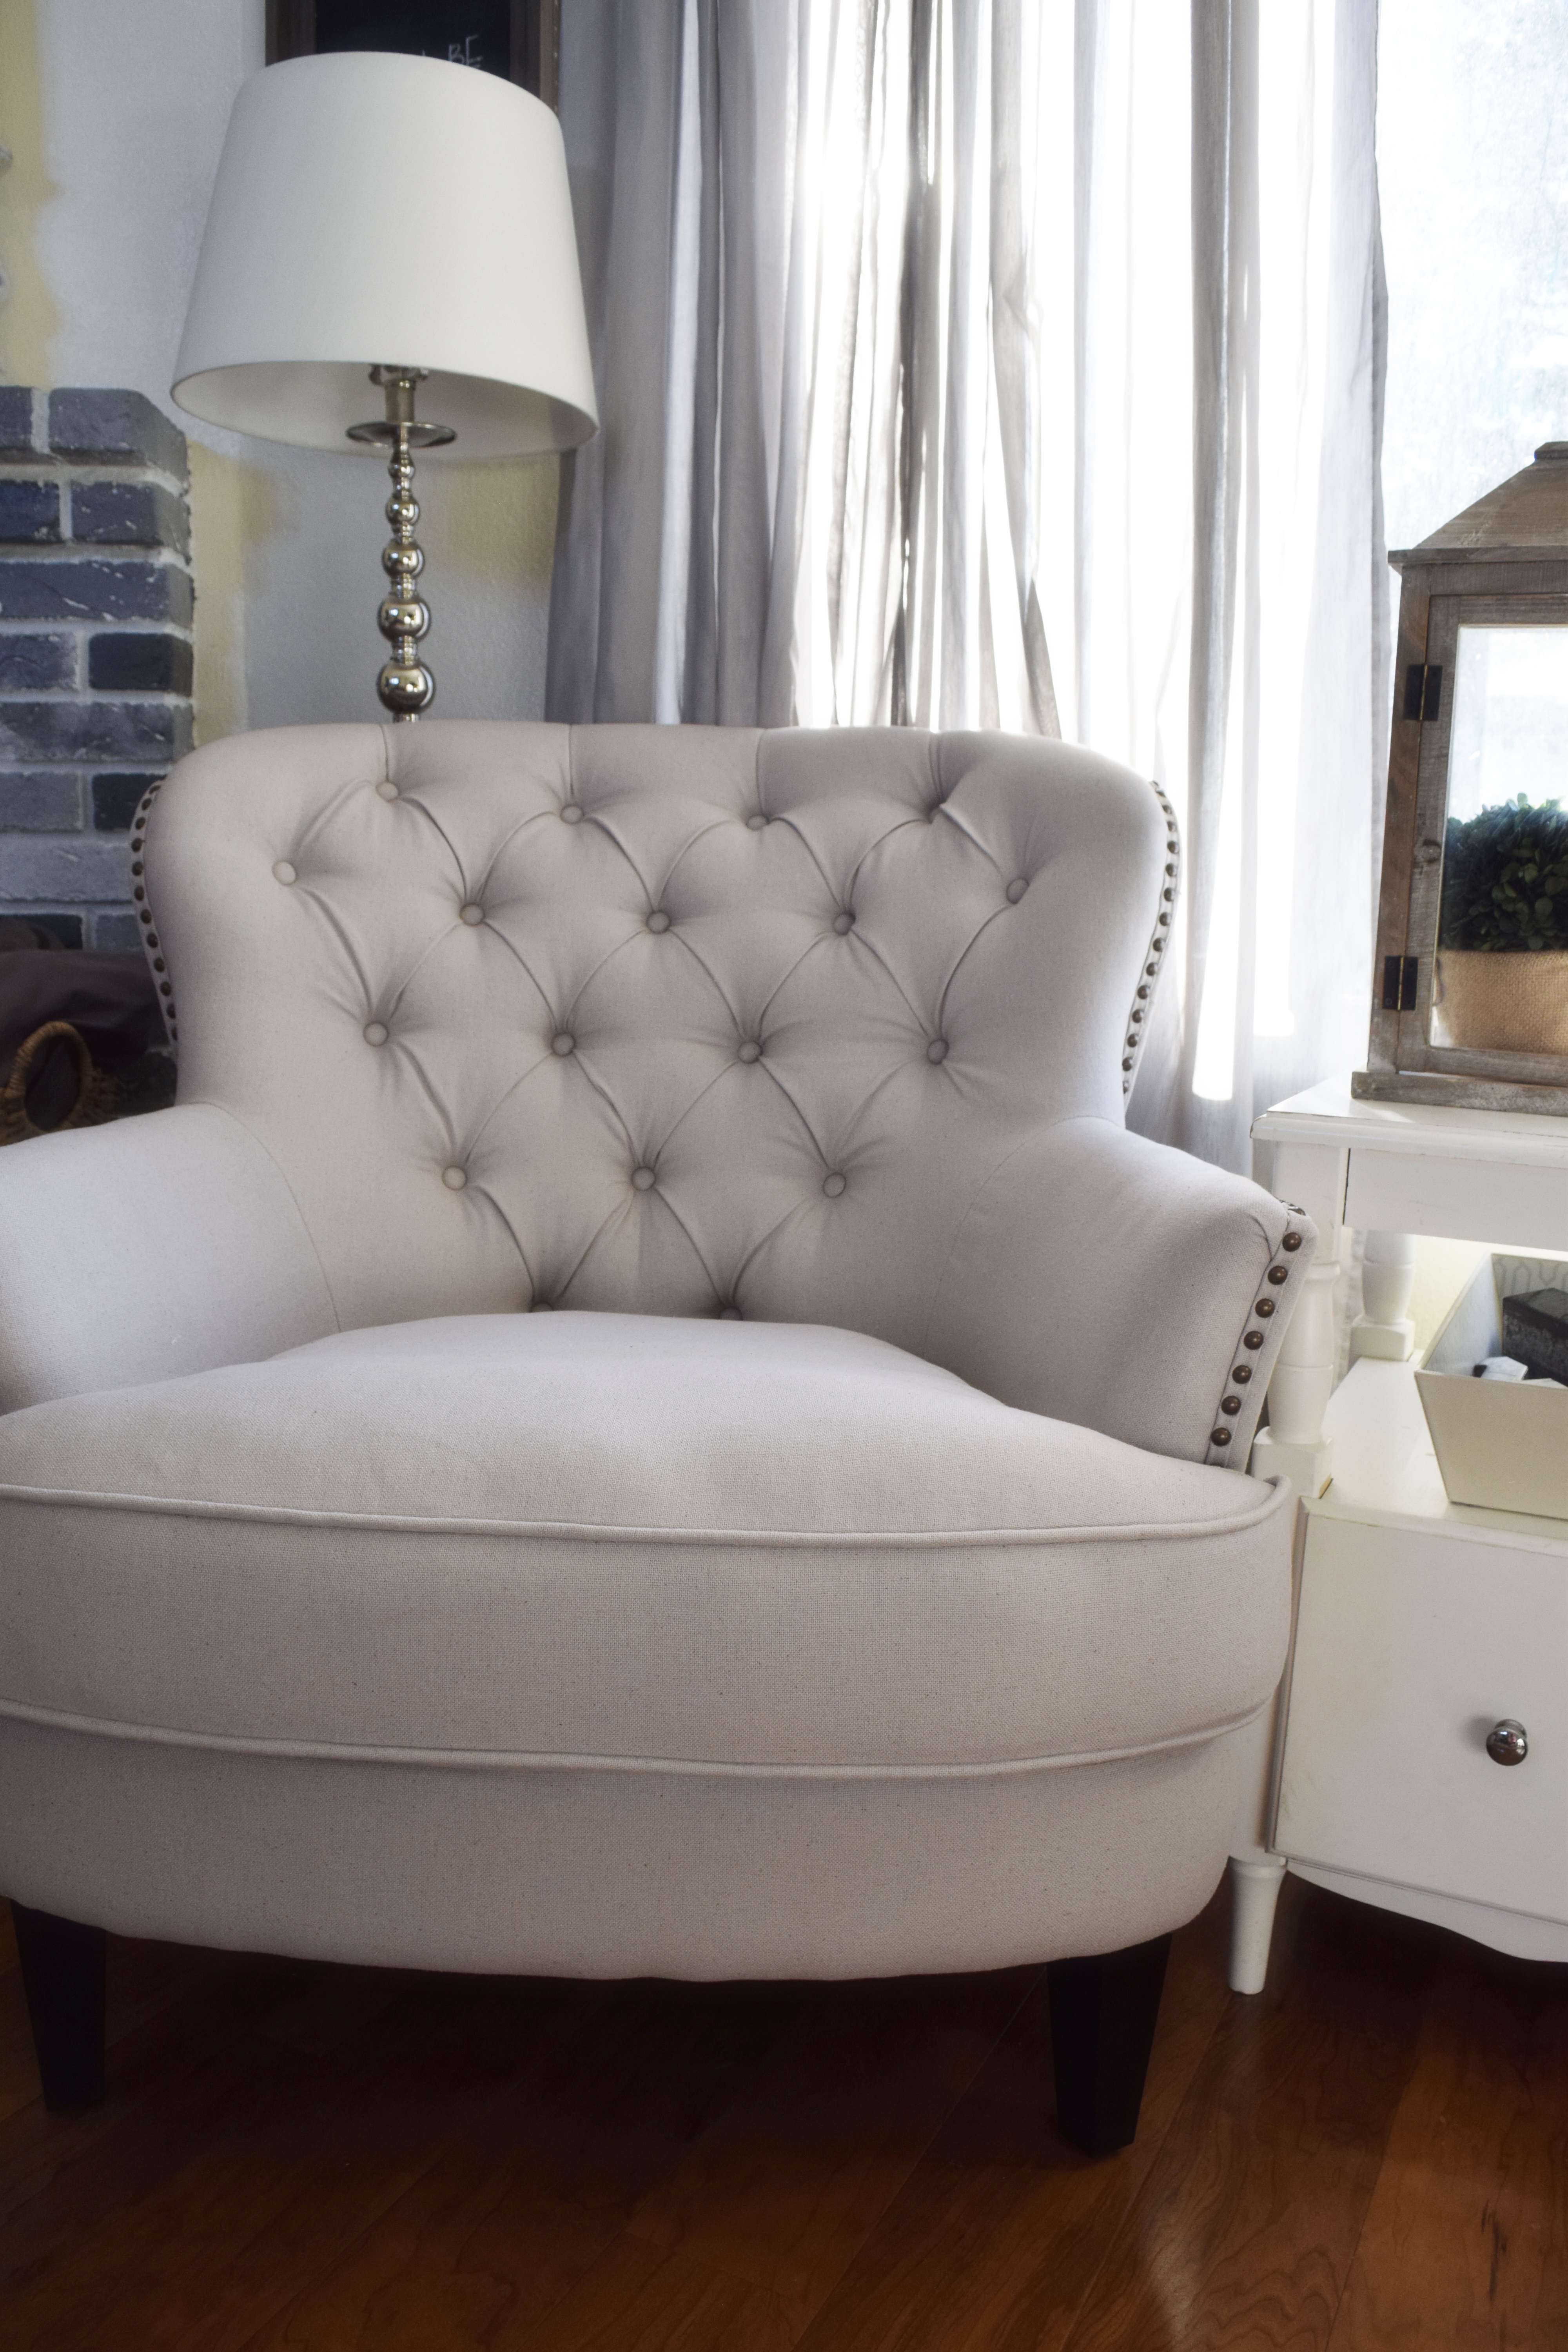 I Should Add, In Case You Were Interested In Purchasing This Tufted Chair,  Itu0027s Called The Christopher Knight Home Tafton Tufted Fabric Club Chair And  You ...